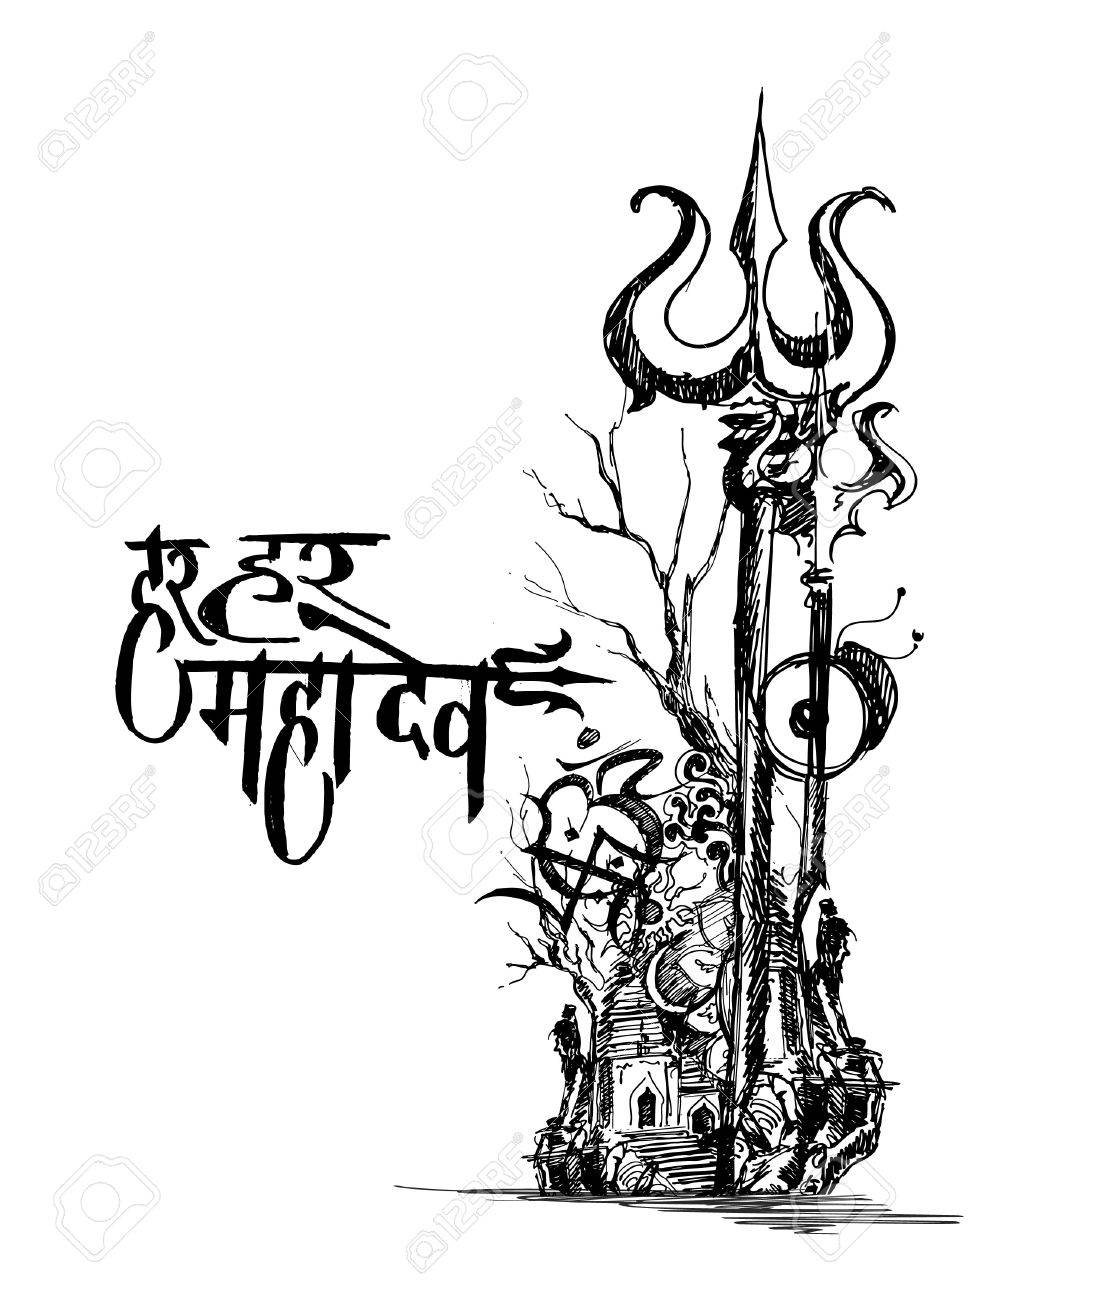 1100x1300 illustration of floral trishul for lord shiva sketch monochrome